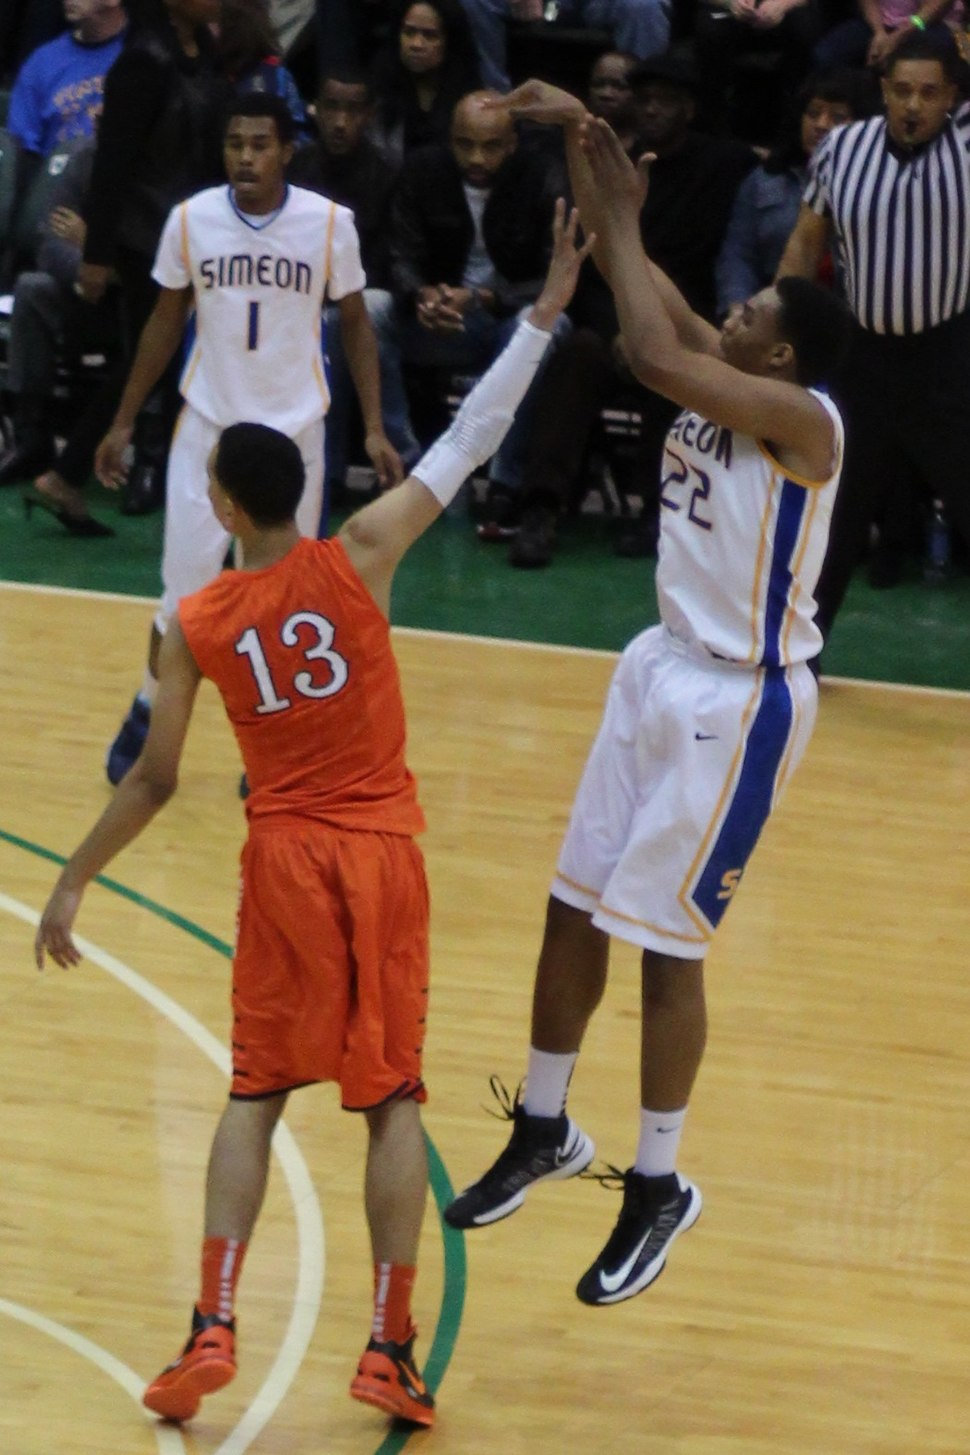 20130126 Jabari Parker shooting over Paul White at Simeon-Whitney Young game